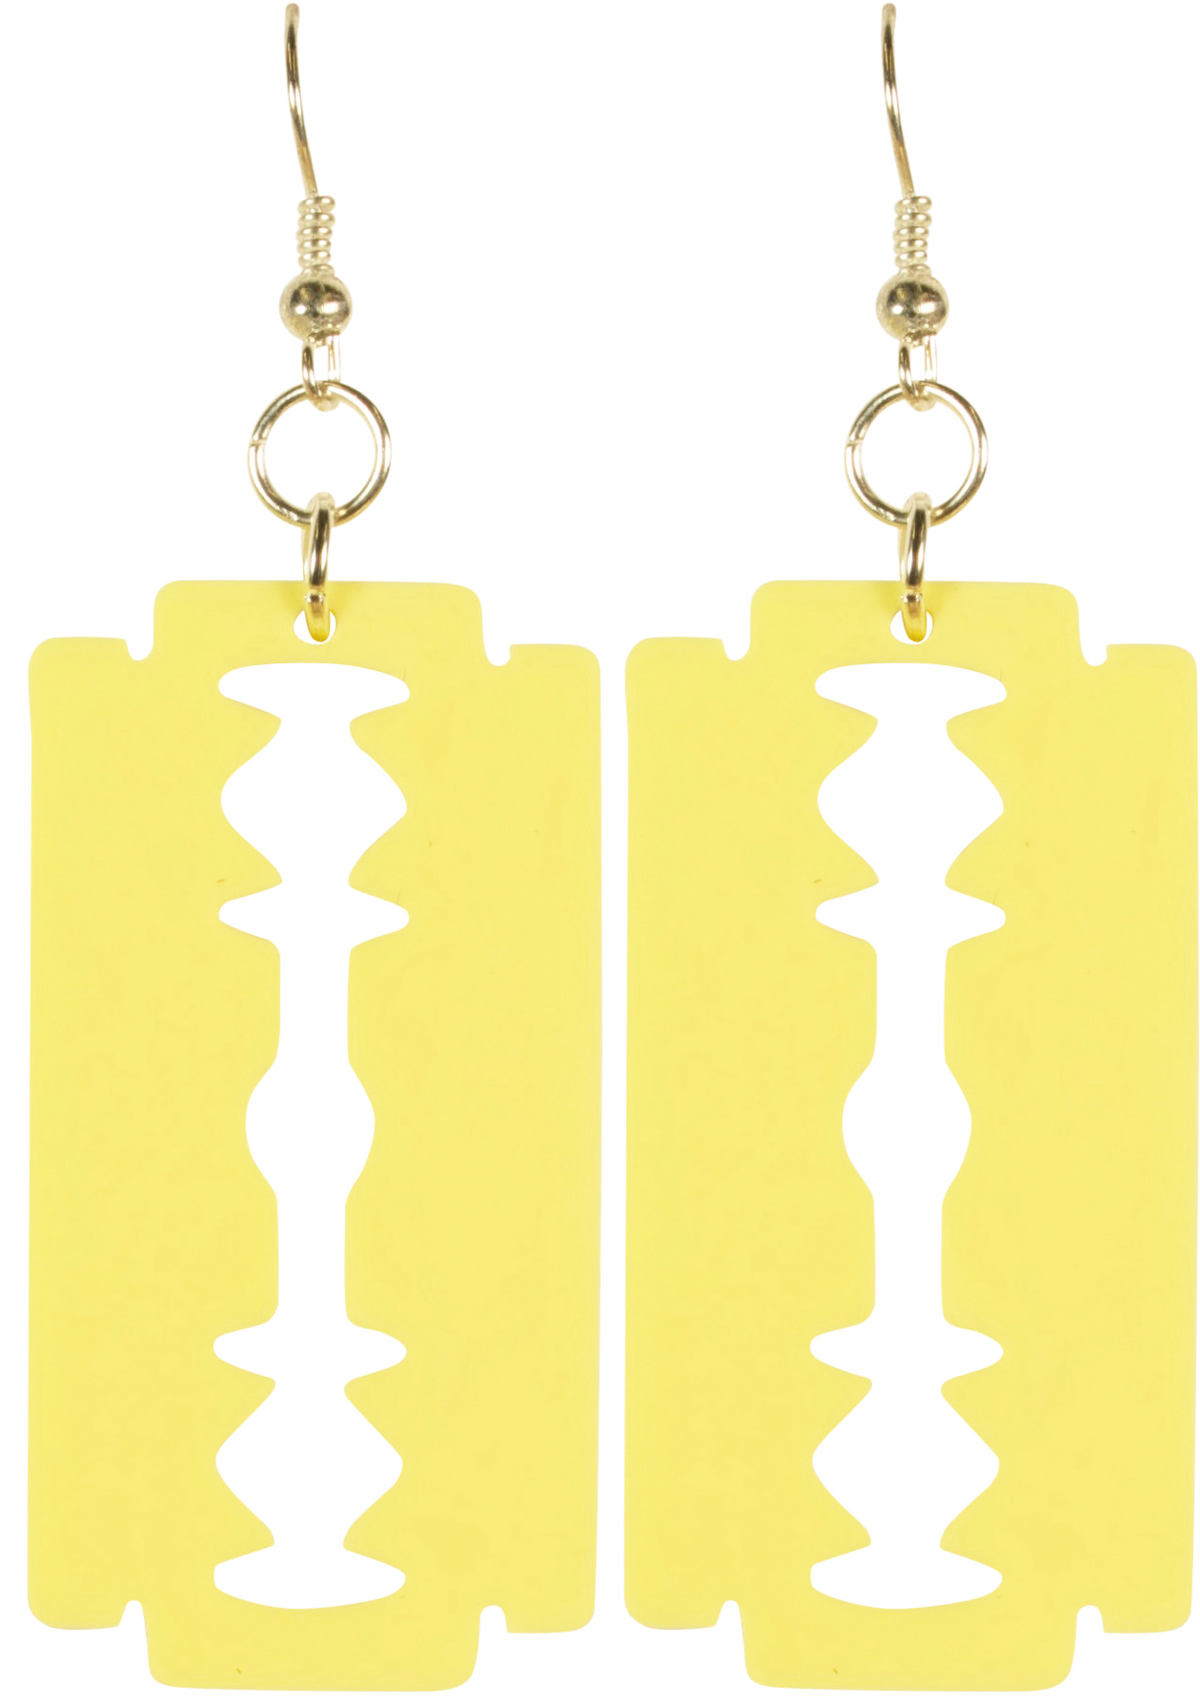 Image of Razor Blade Earrings (Other Colour Options Available)